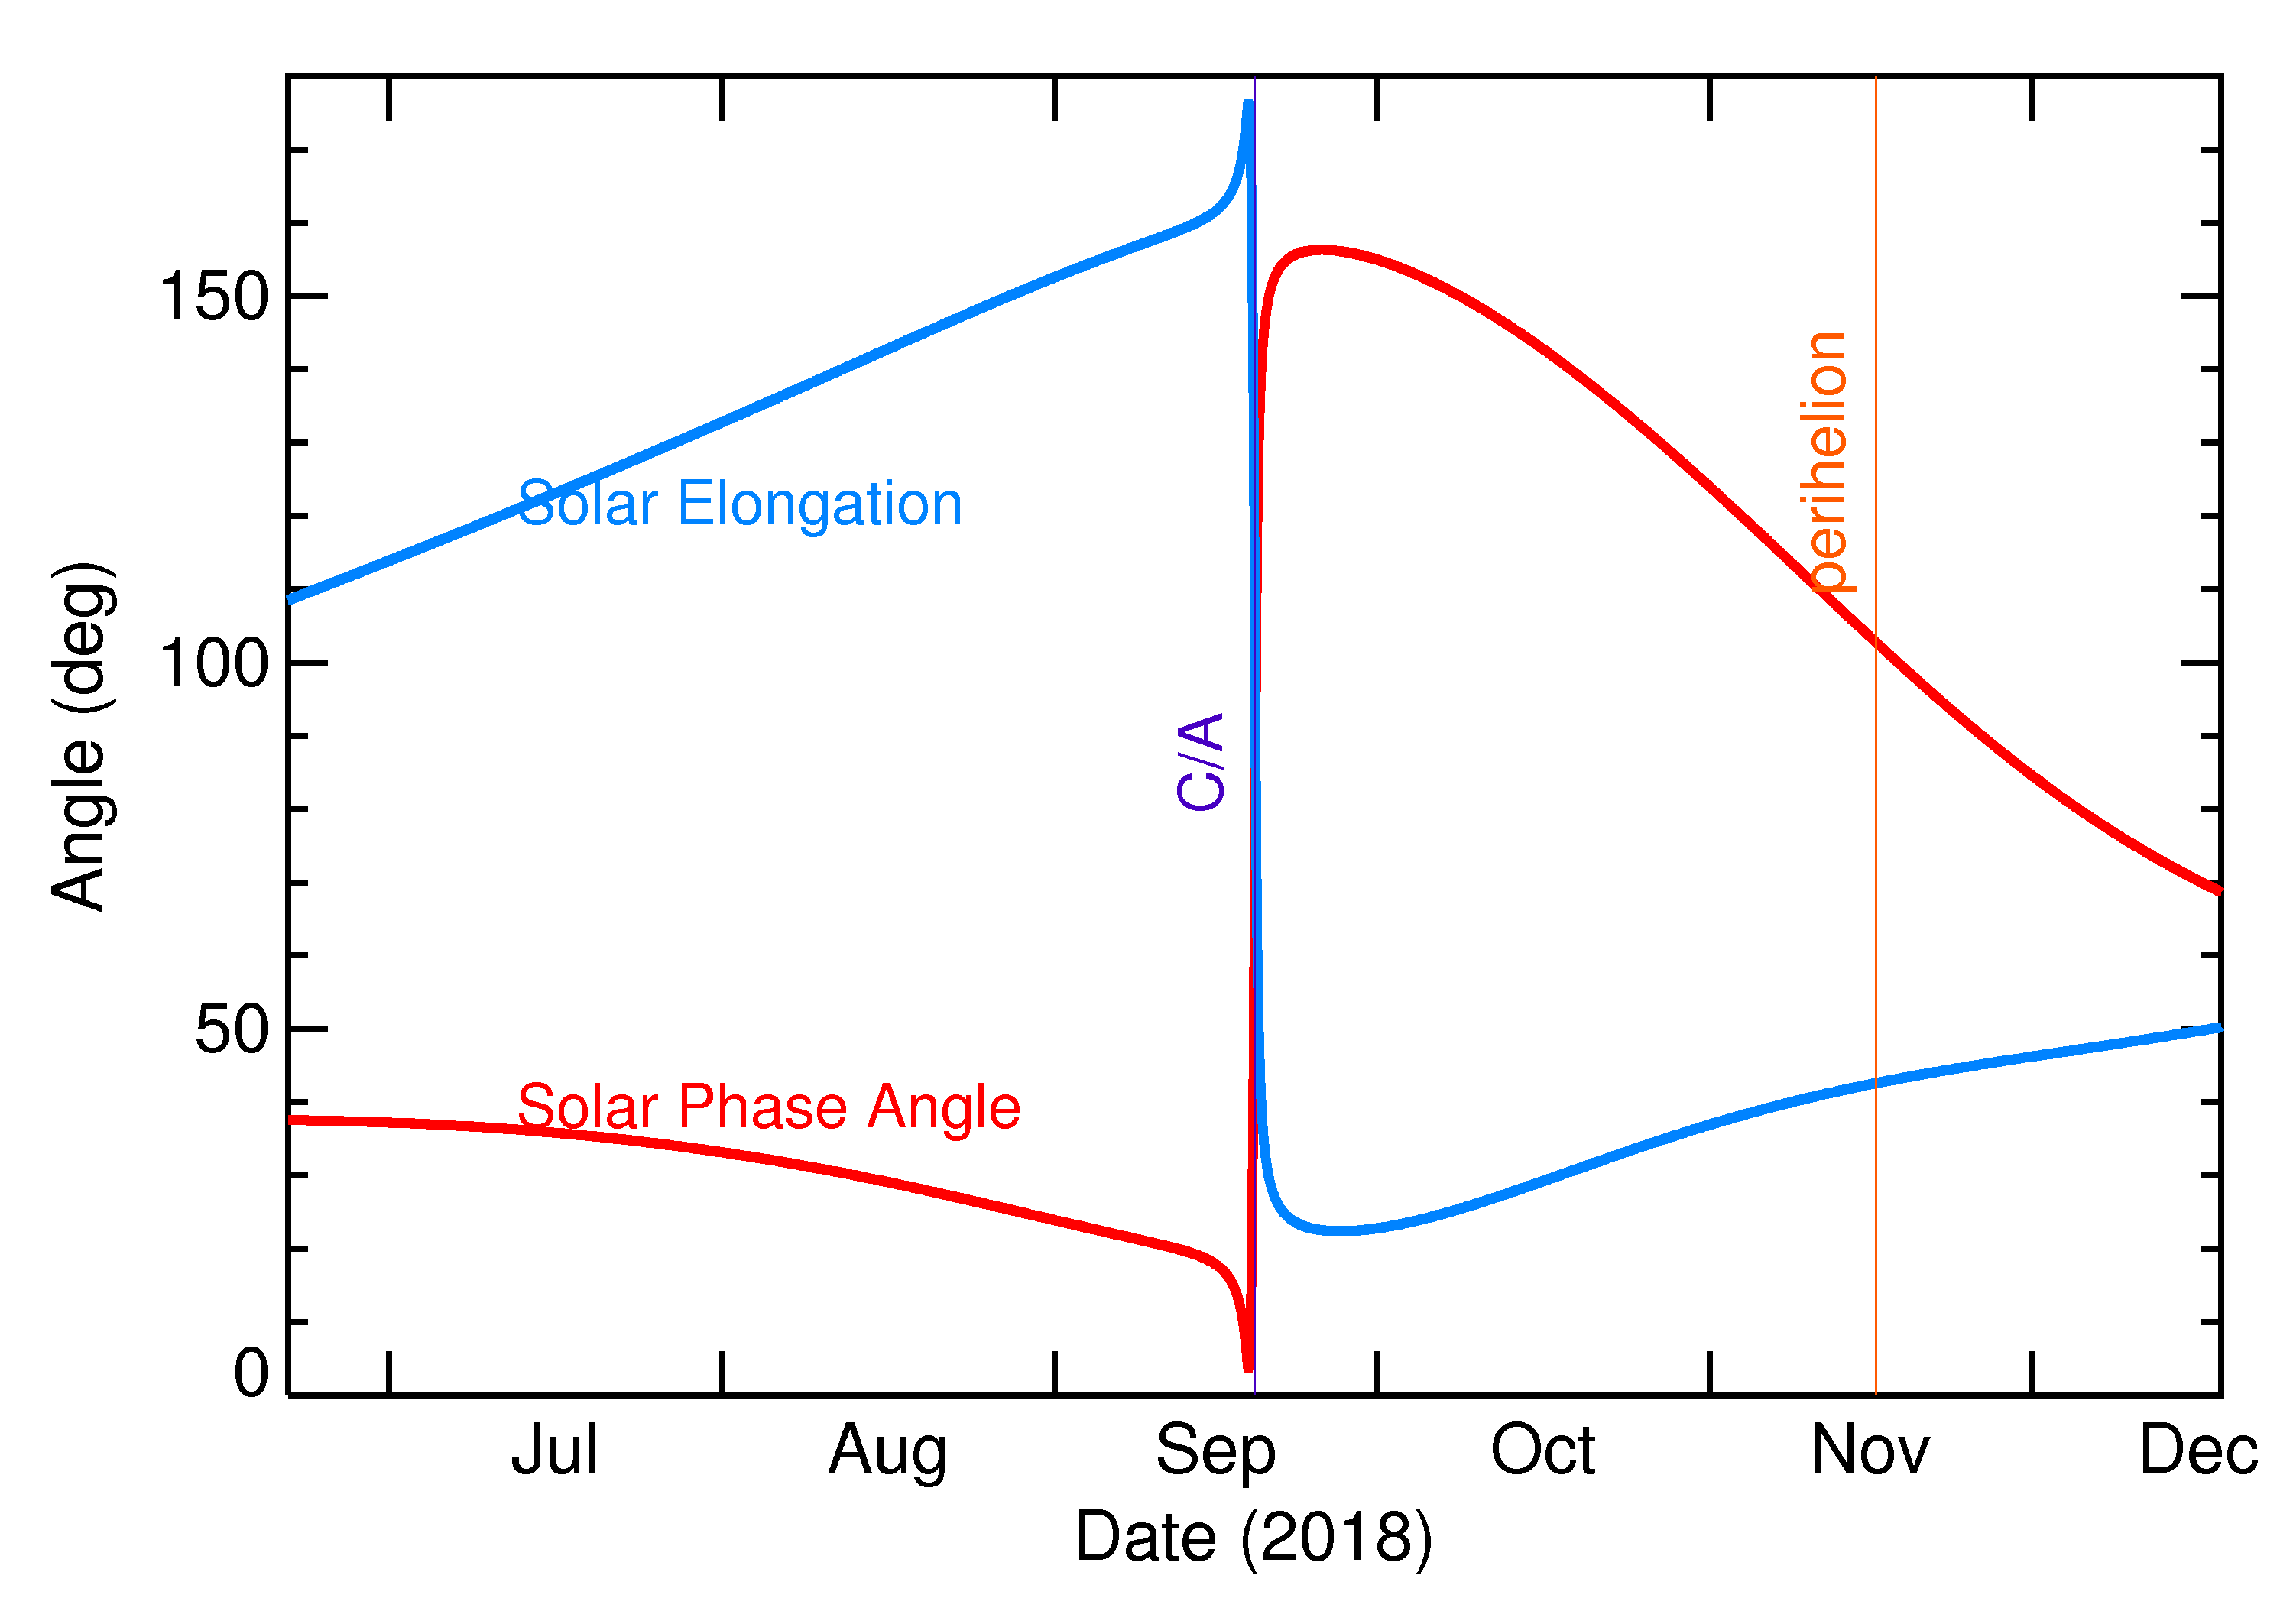 Solar Elongation and Solar Phase Angle of 2018 SC in the months around closest approach